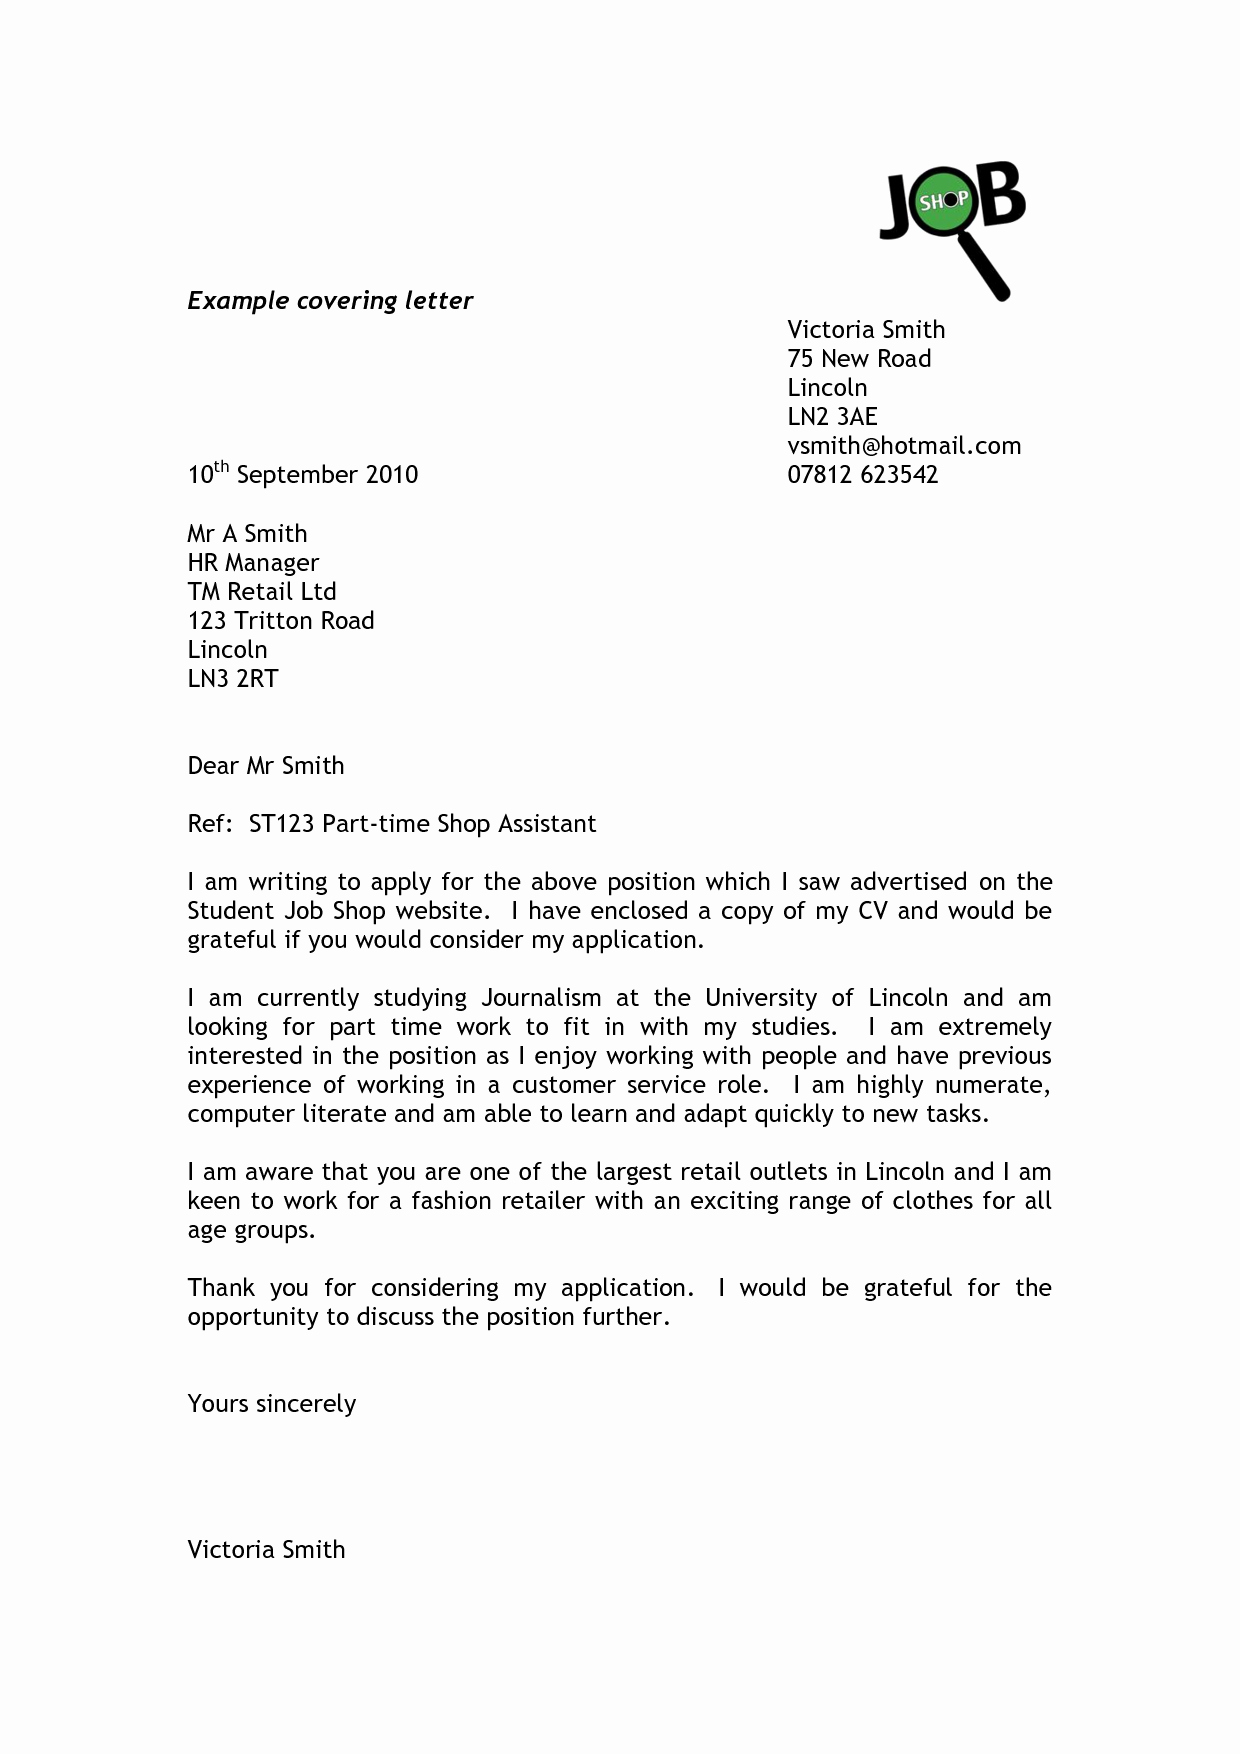 Letter Of Application Template Lovely Cover Letter for Resume Sales Position Writing and